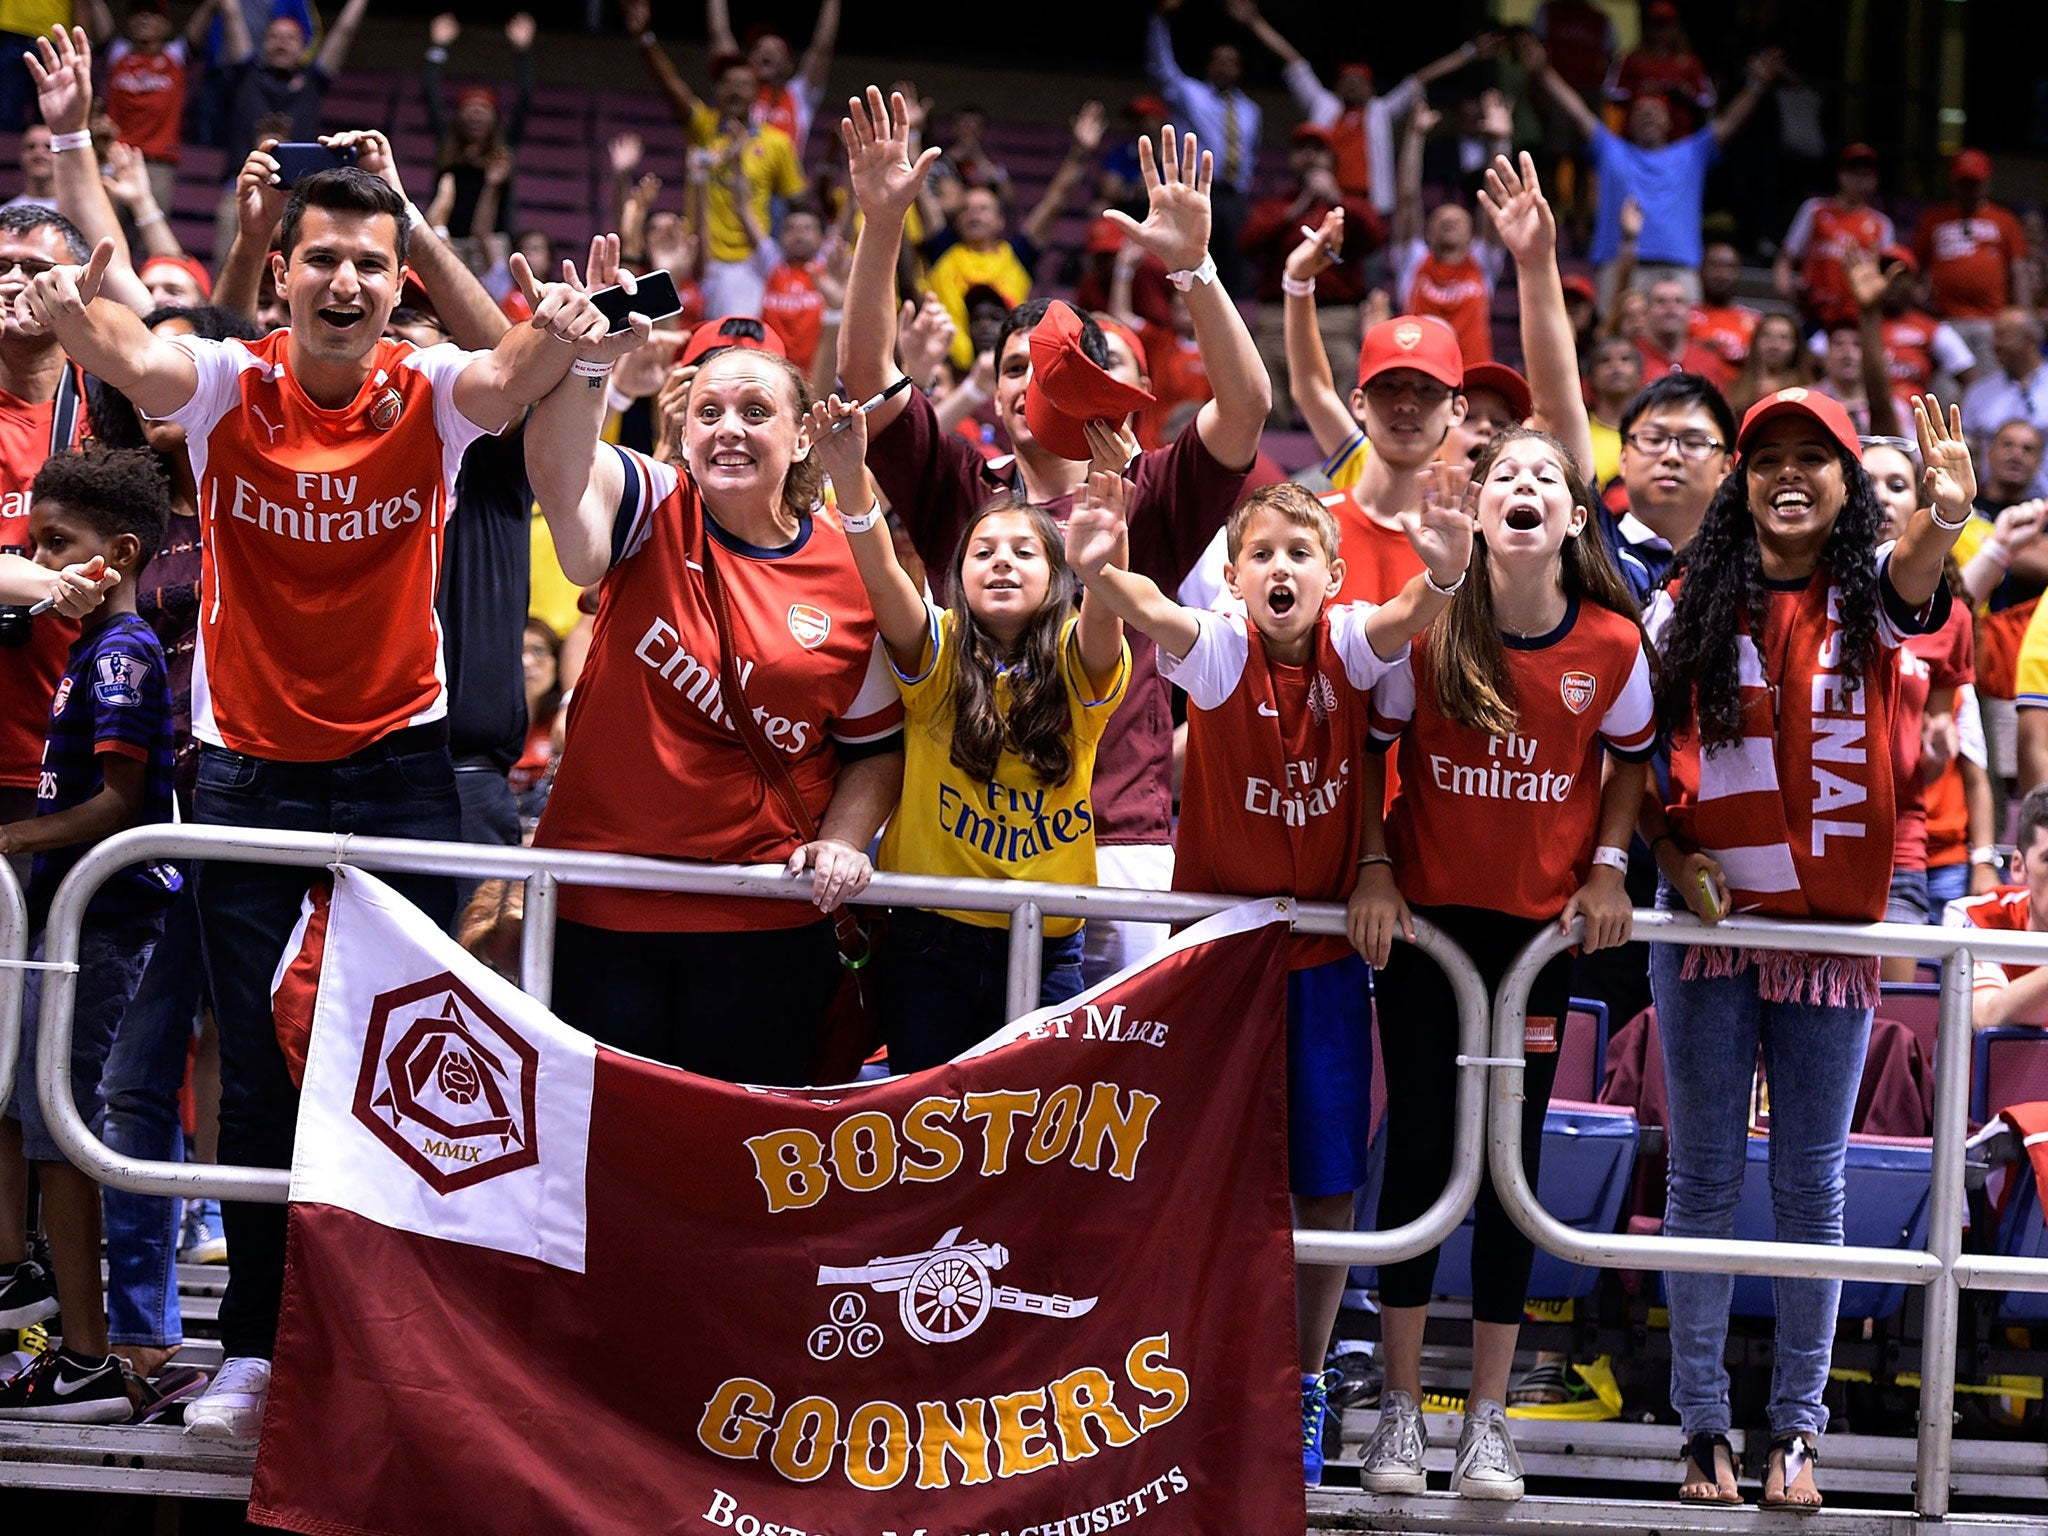 the love for soccer in america Soccer is a popular youth participant sport for americans generally and a popular spectator sport for the hispanic immigrant population otherwise, it's pretty far down the list.